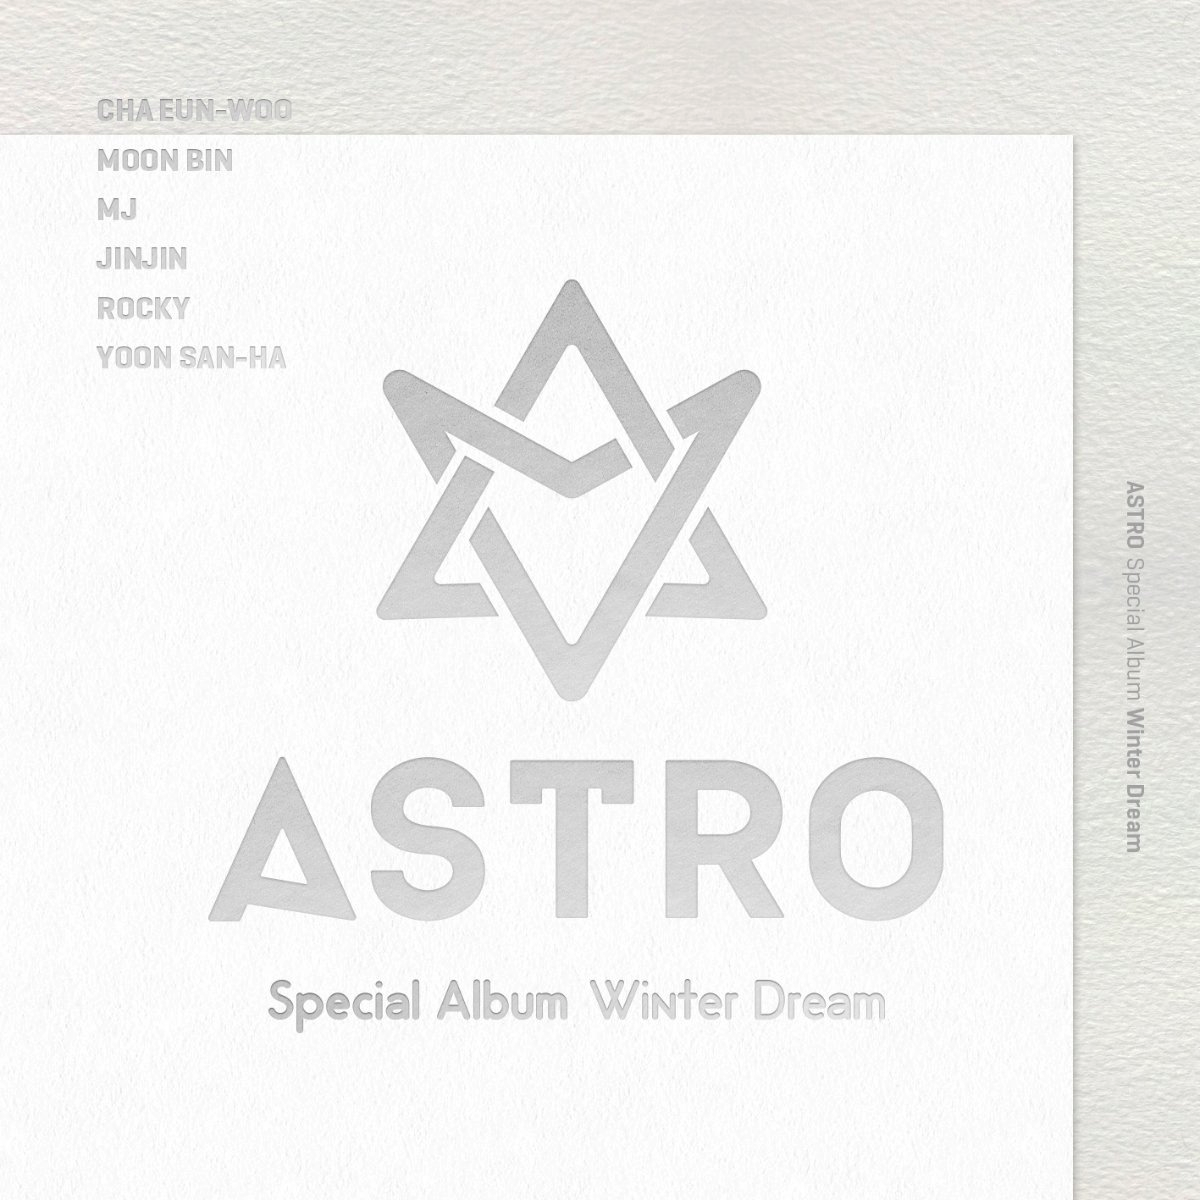 Winter Dream (ASTRO)